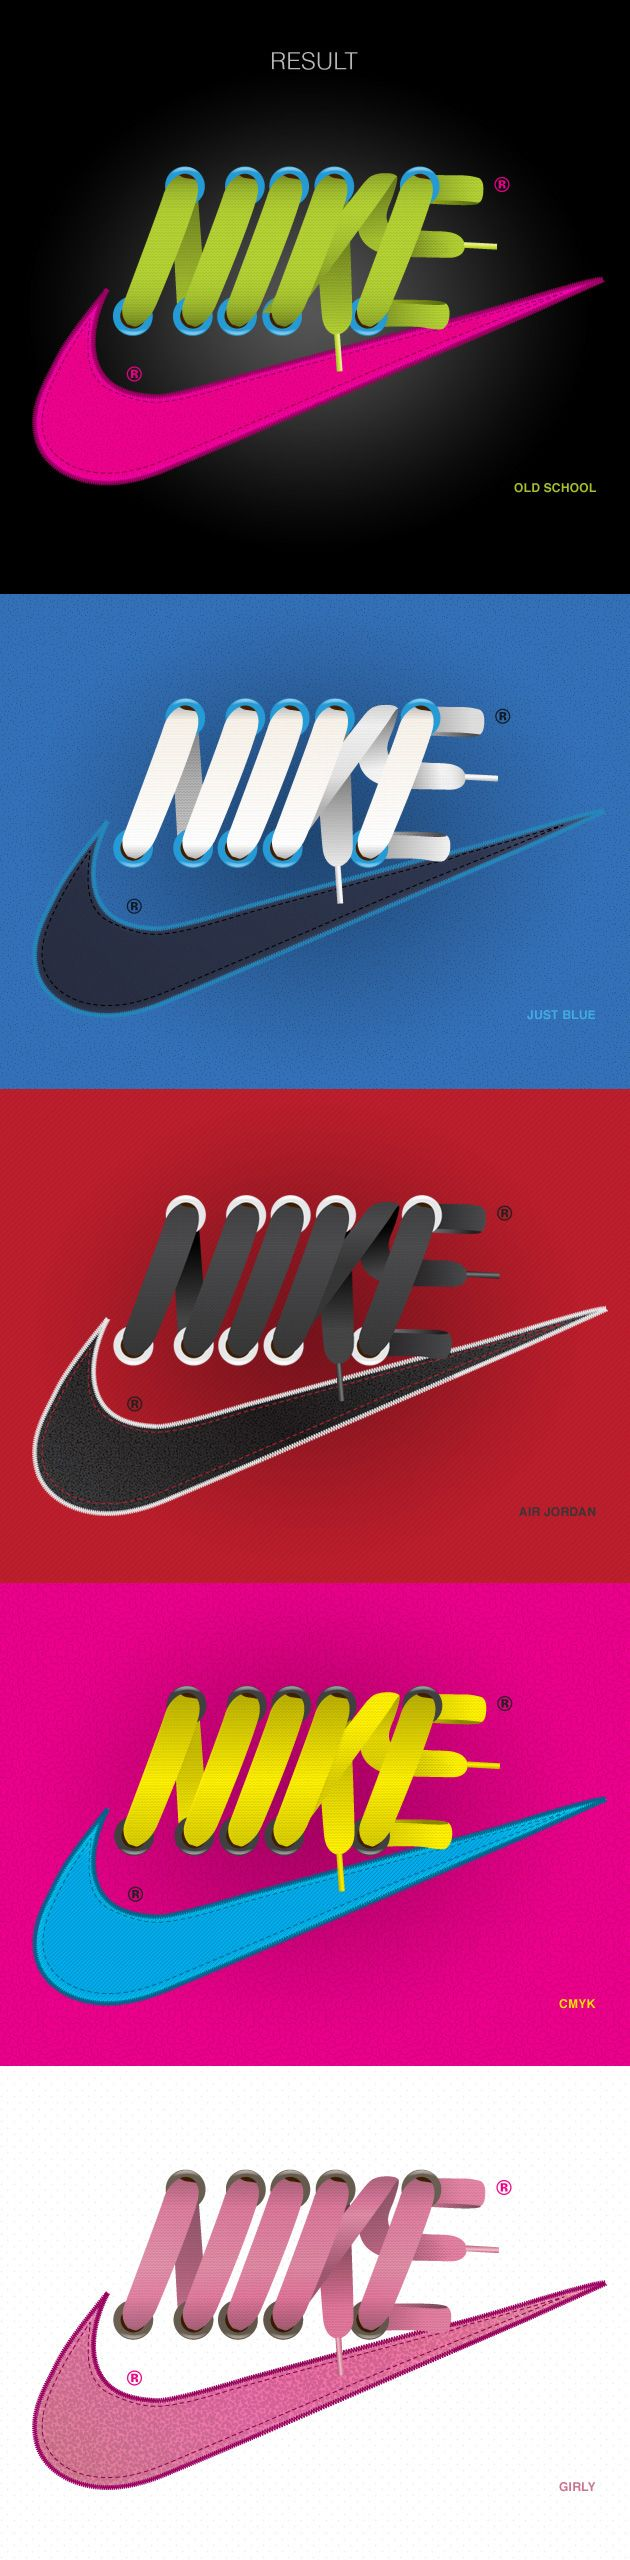 Personal project where I got the inspiration from the Nike logo and laces shape.